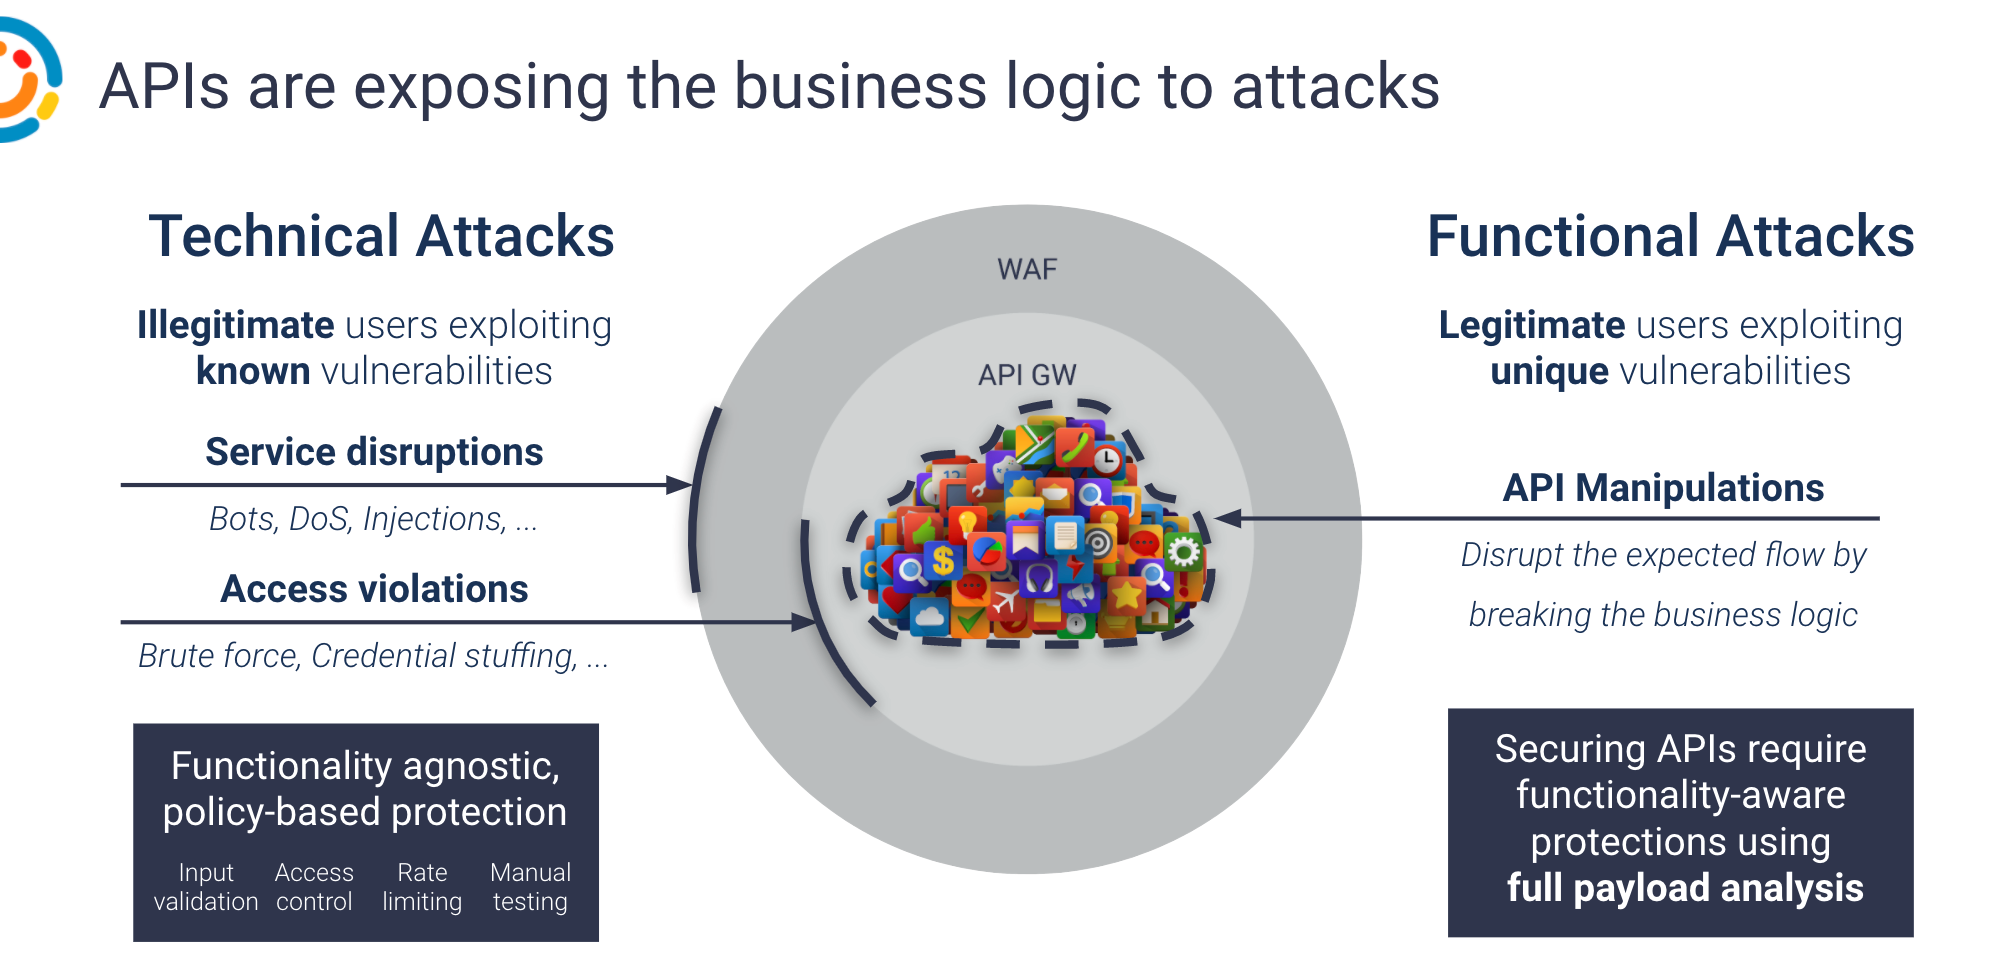 Functional Attacks Image